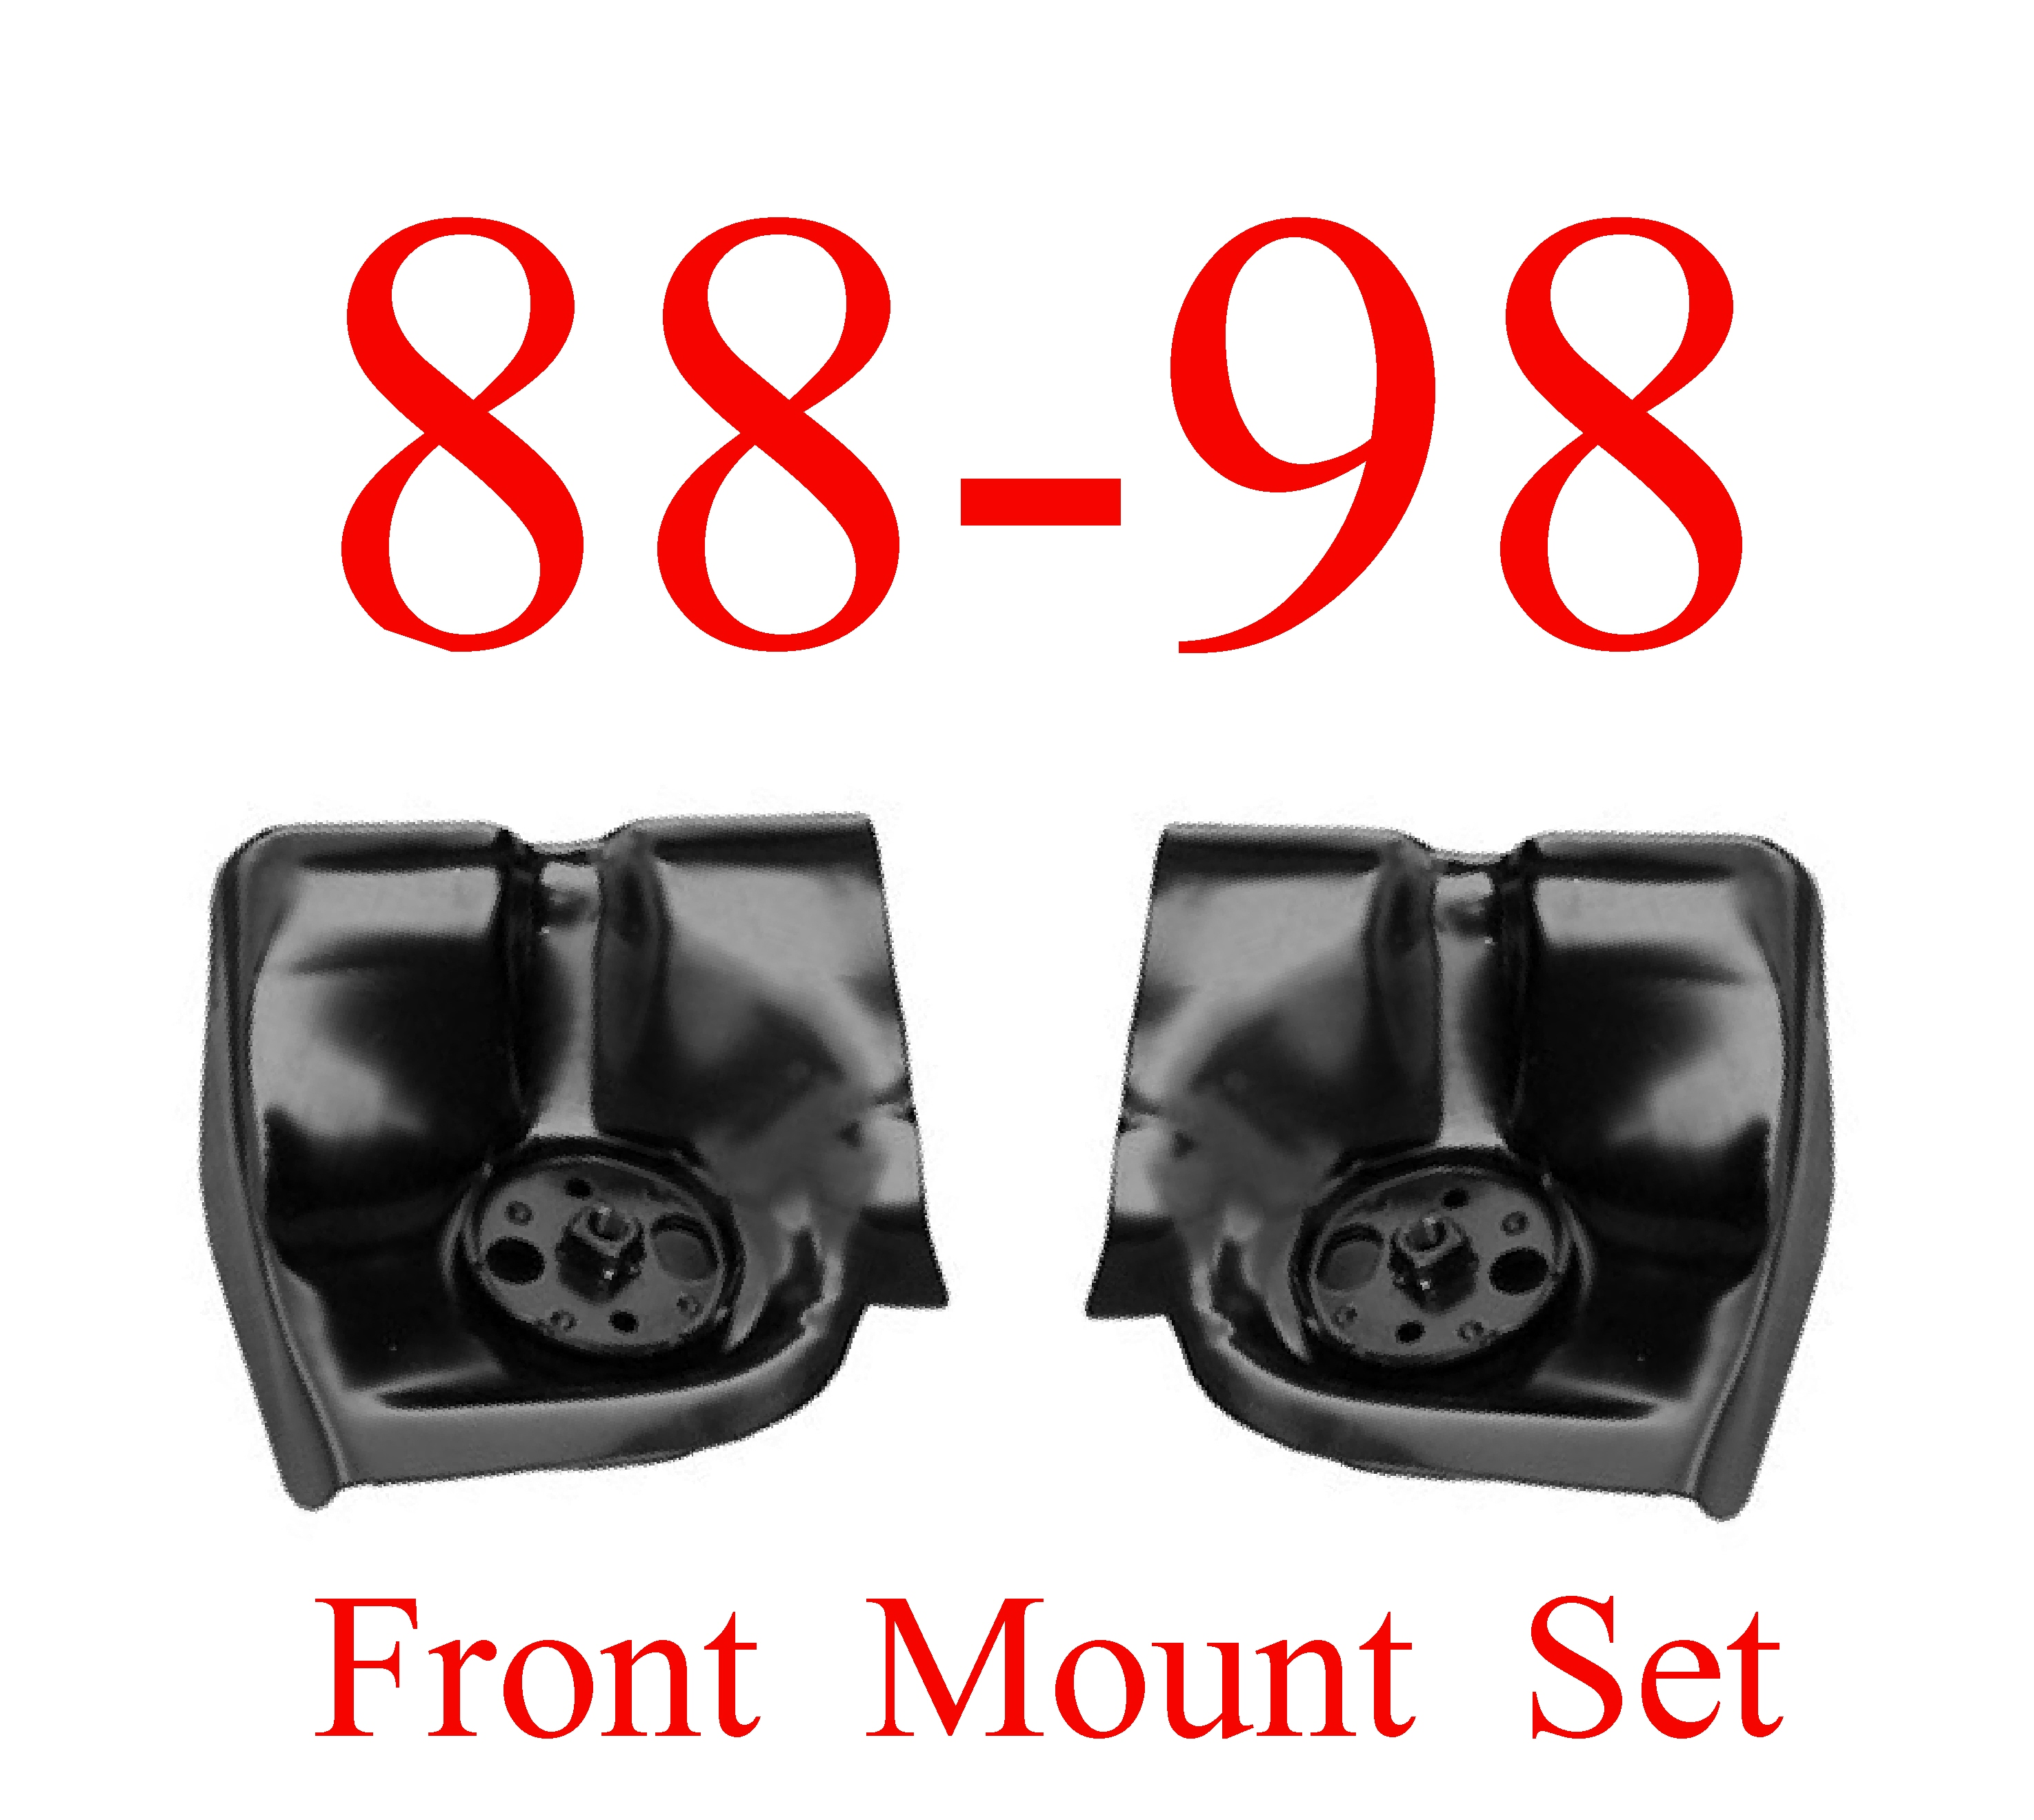 88-98 Chevy GMC Truck Front Cab Mount SET